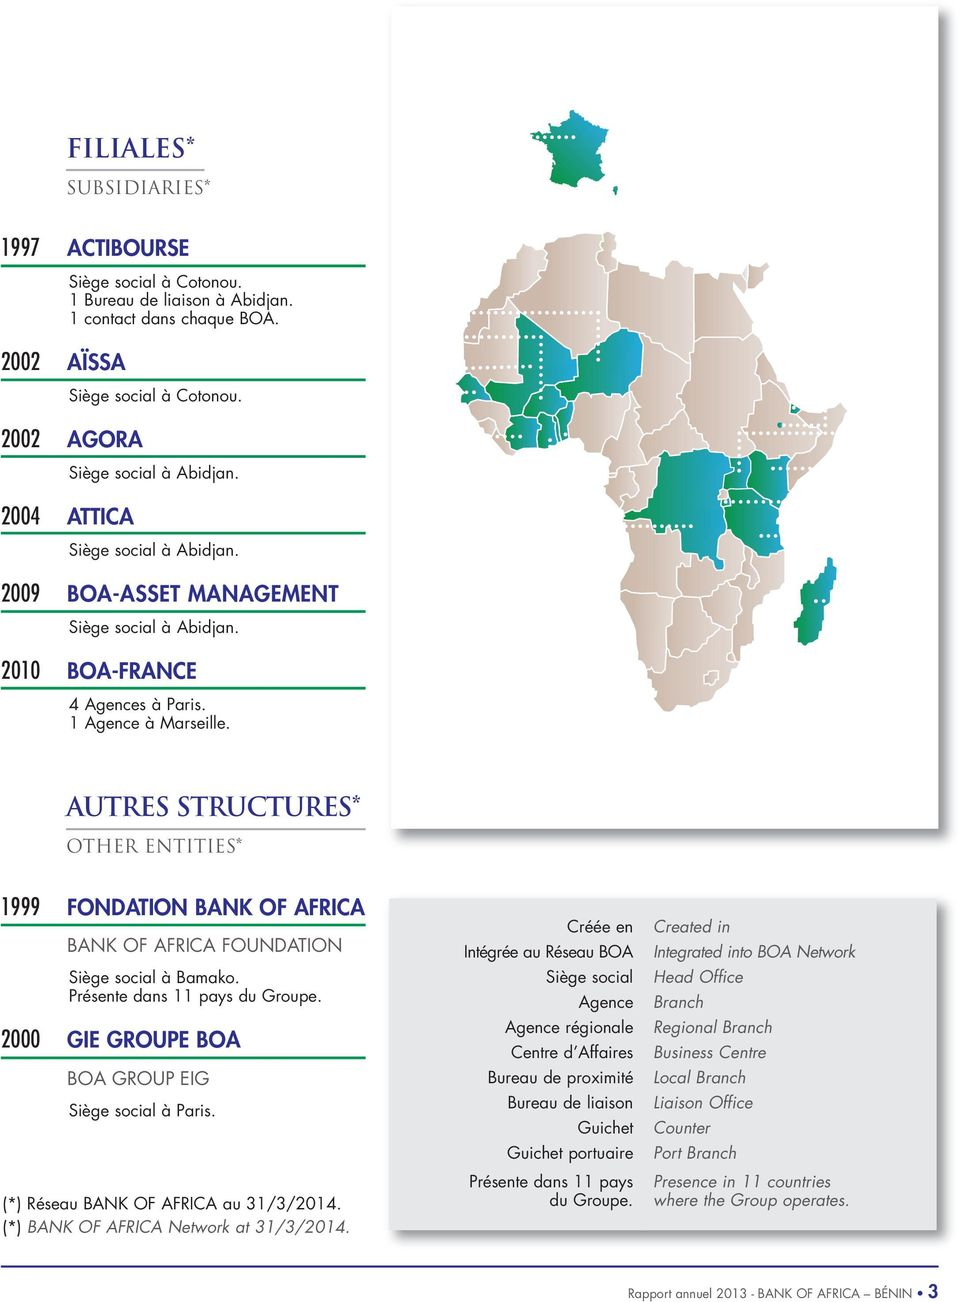 Niger Burkina Faso Mali Sénégal Côte d Ivoire Ghana Togo Bénin RDC Djibouti & Addis Abeba Ouganda Kenya Burundi Tanzanie Madagascar AUTRES STRUCTURES* Other entities* 1999 FONDATION BANK OF AFRICA